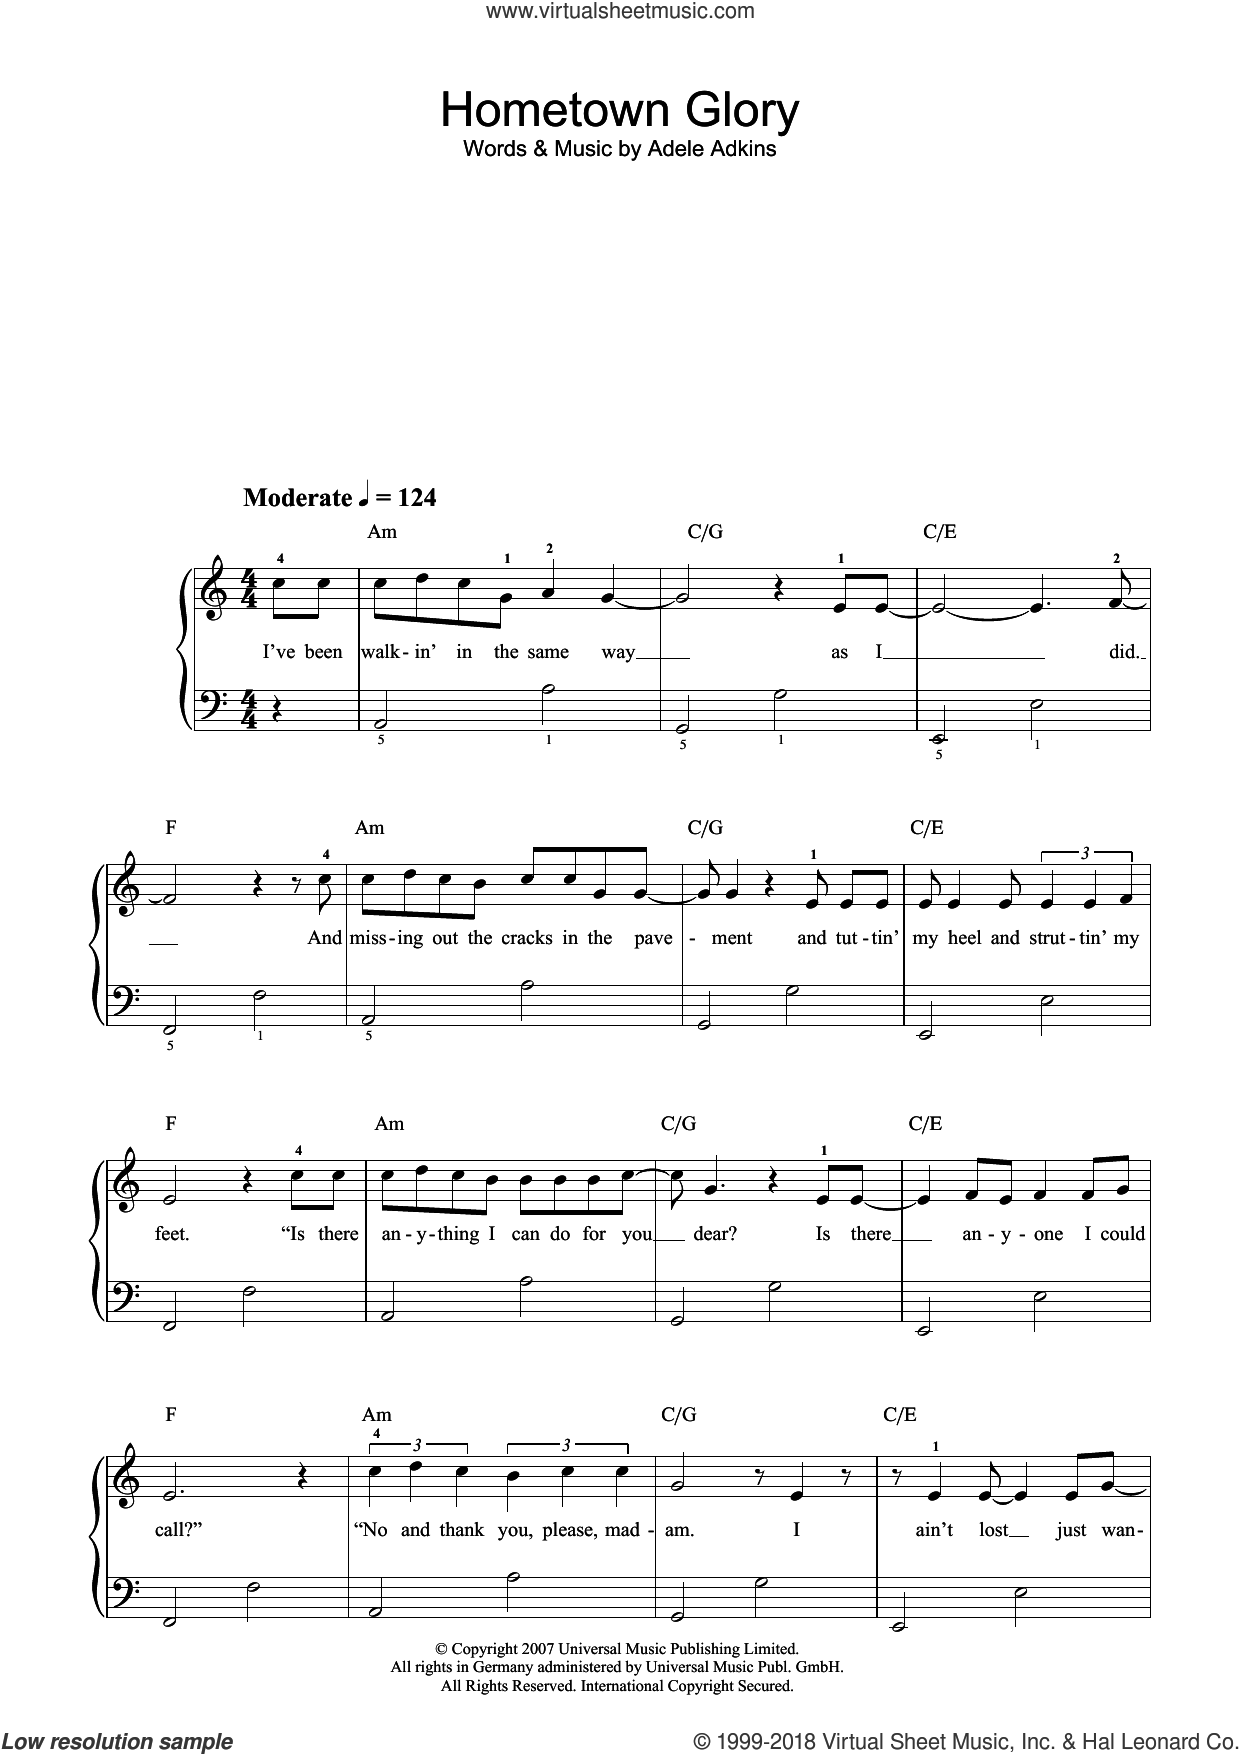 Hometown Glory (Radio Edit) sheet music for piano solo by Adele Adkins